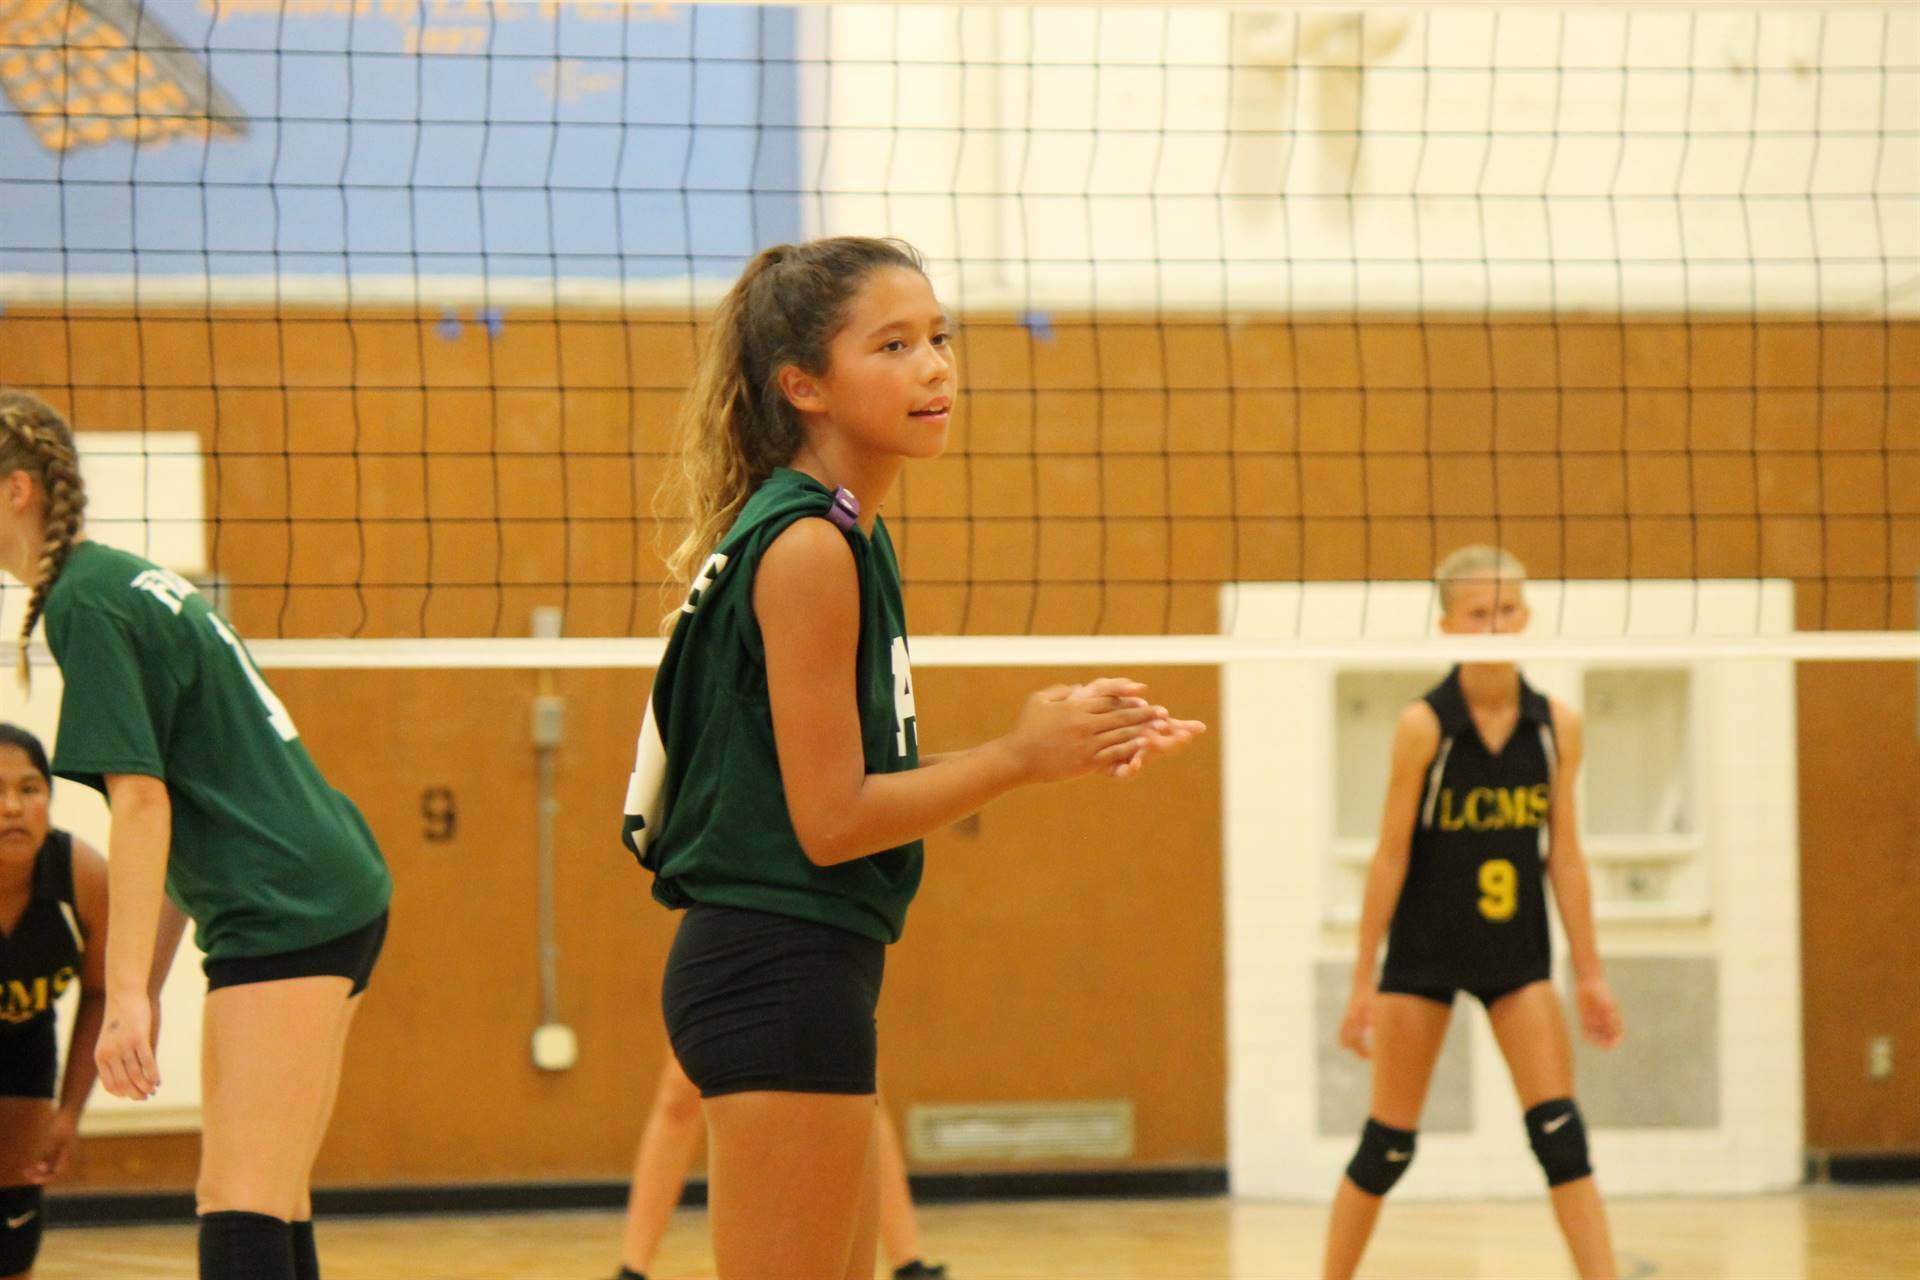 Picture of girl volleyball player